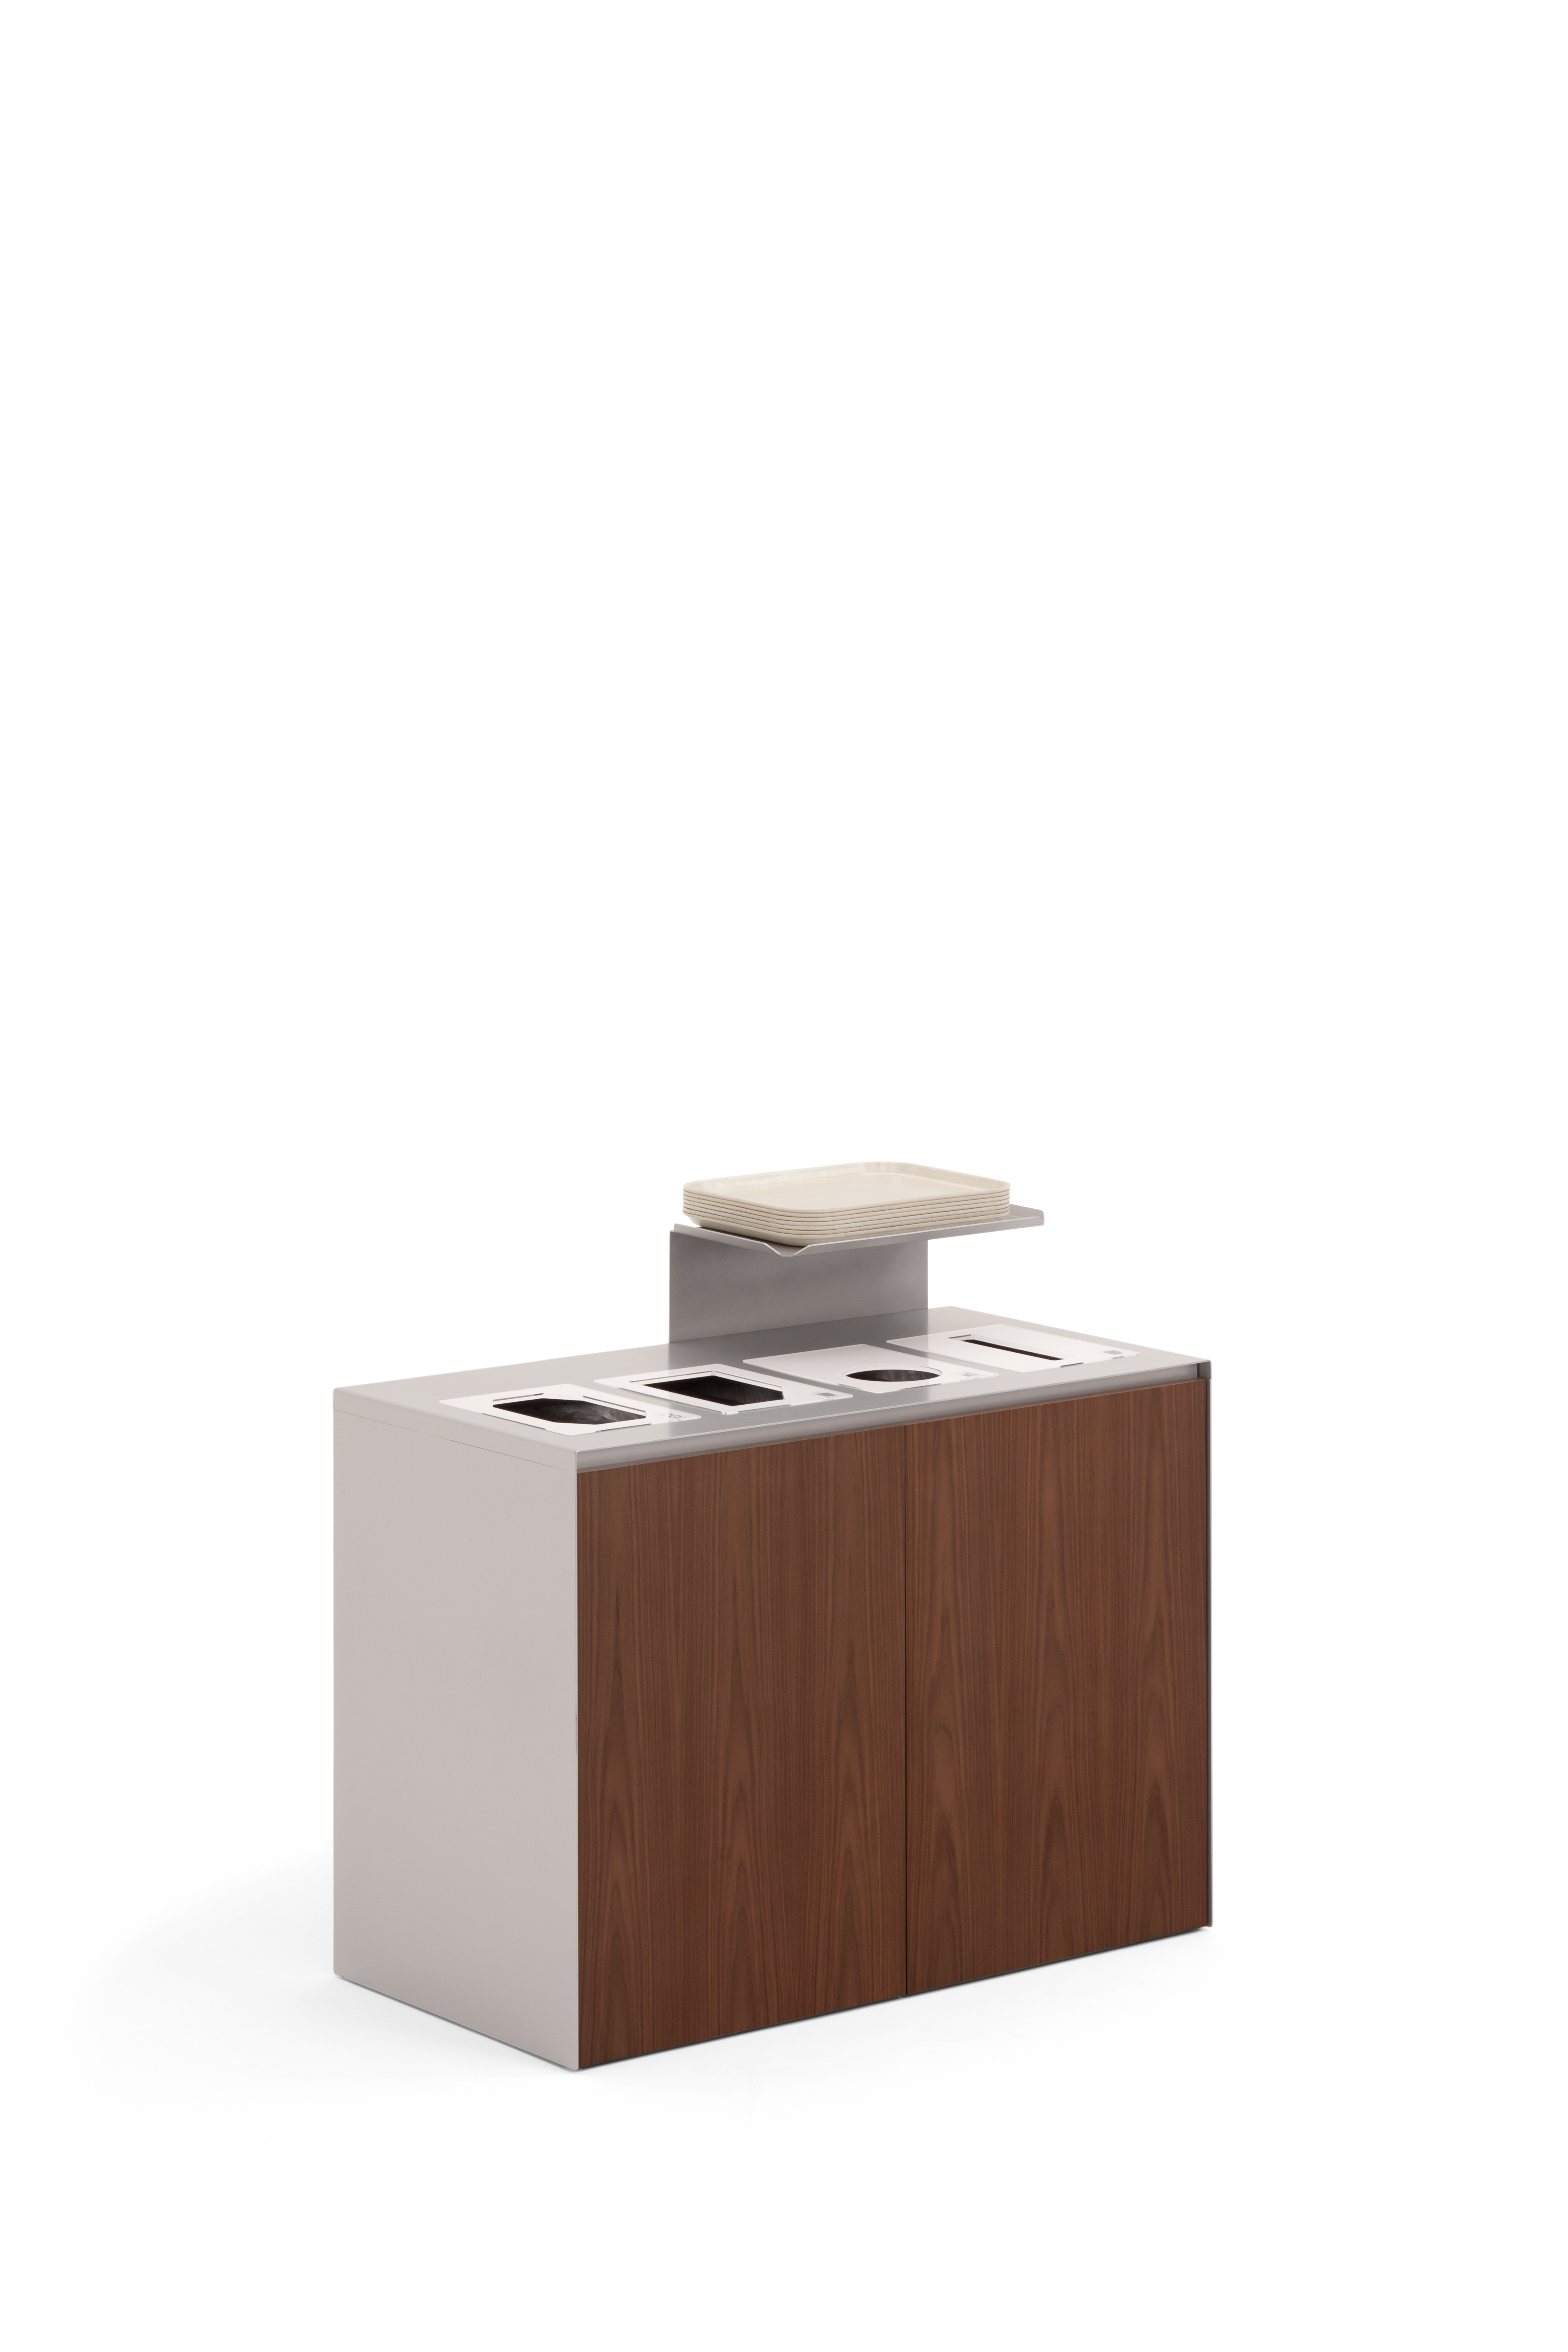 4-slot stationary unit with optional tray shelf